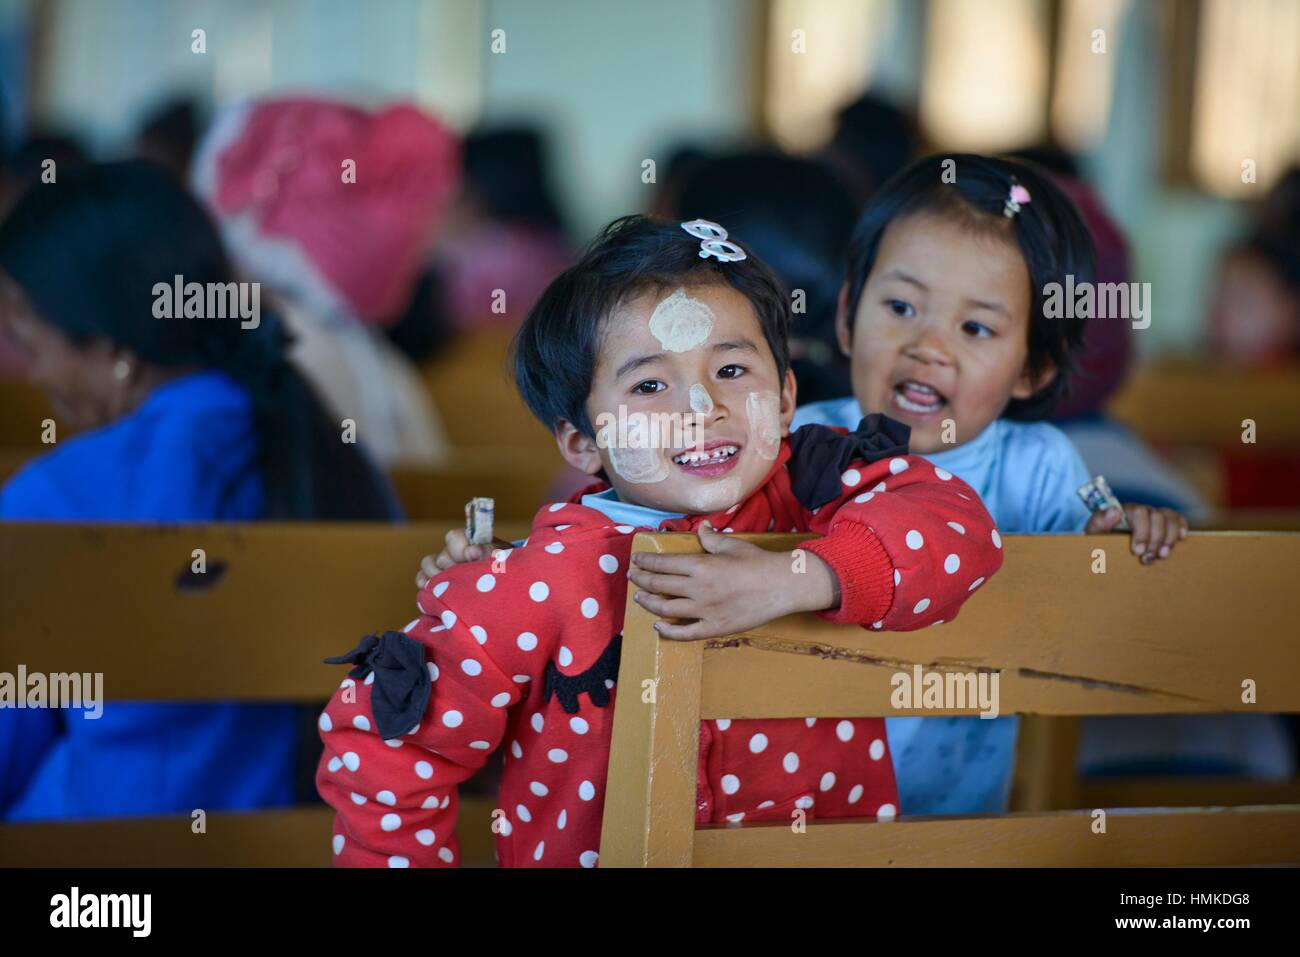 cute kids church stock photos & cute kids church stock images - alamy